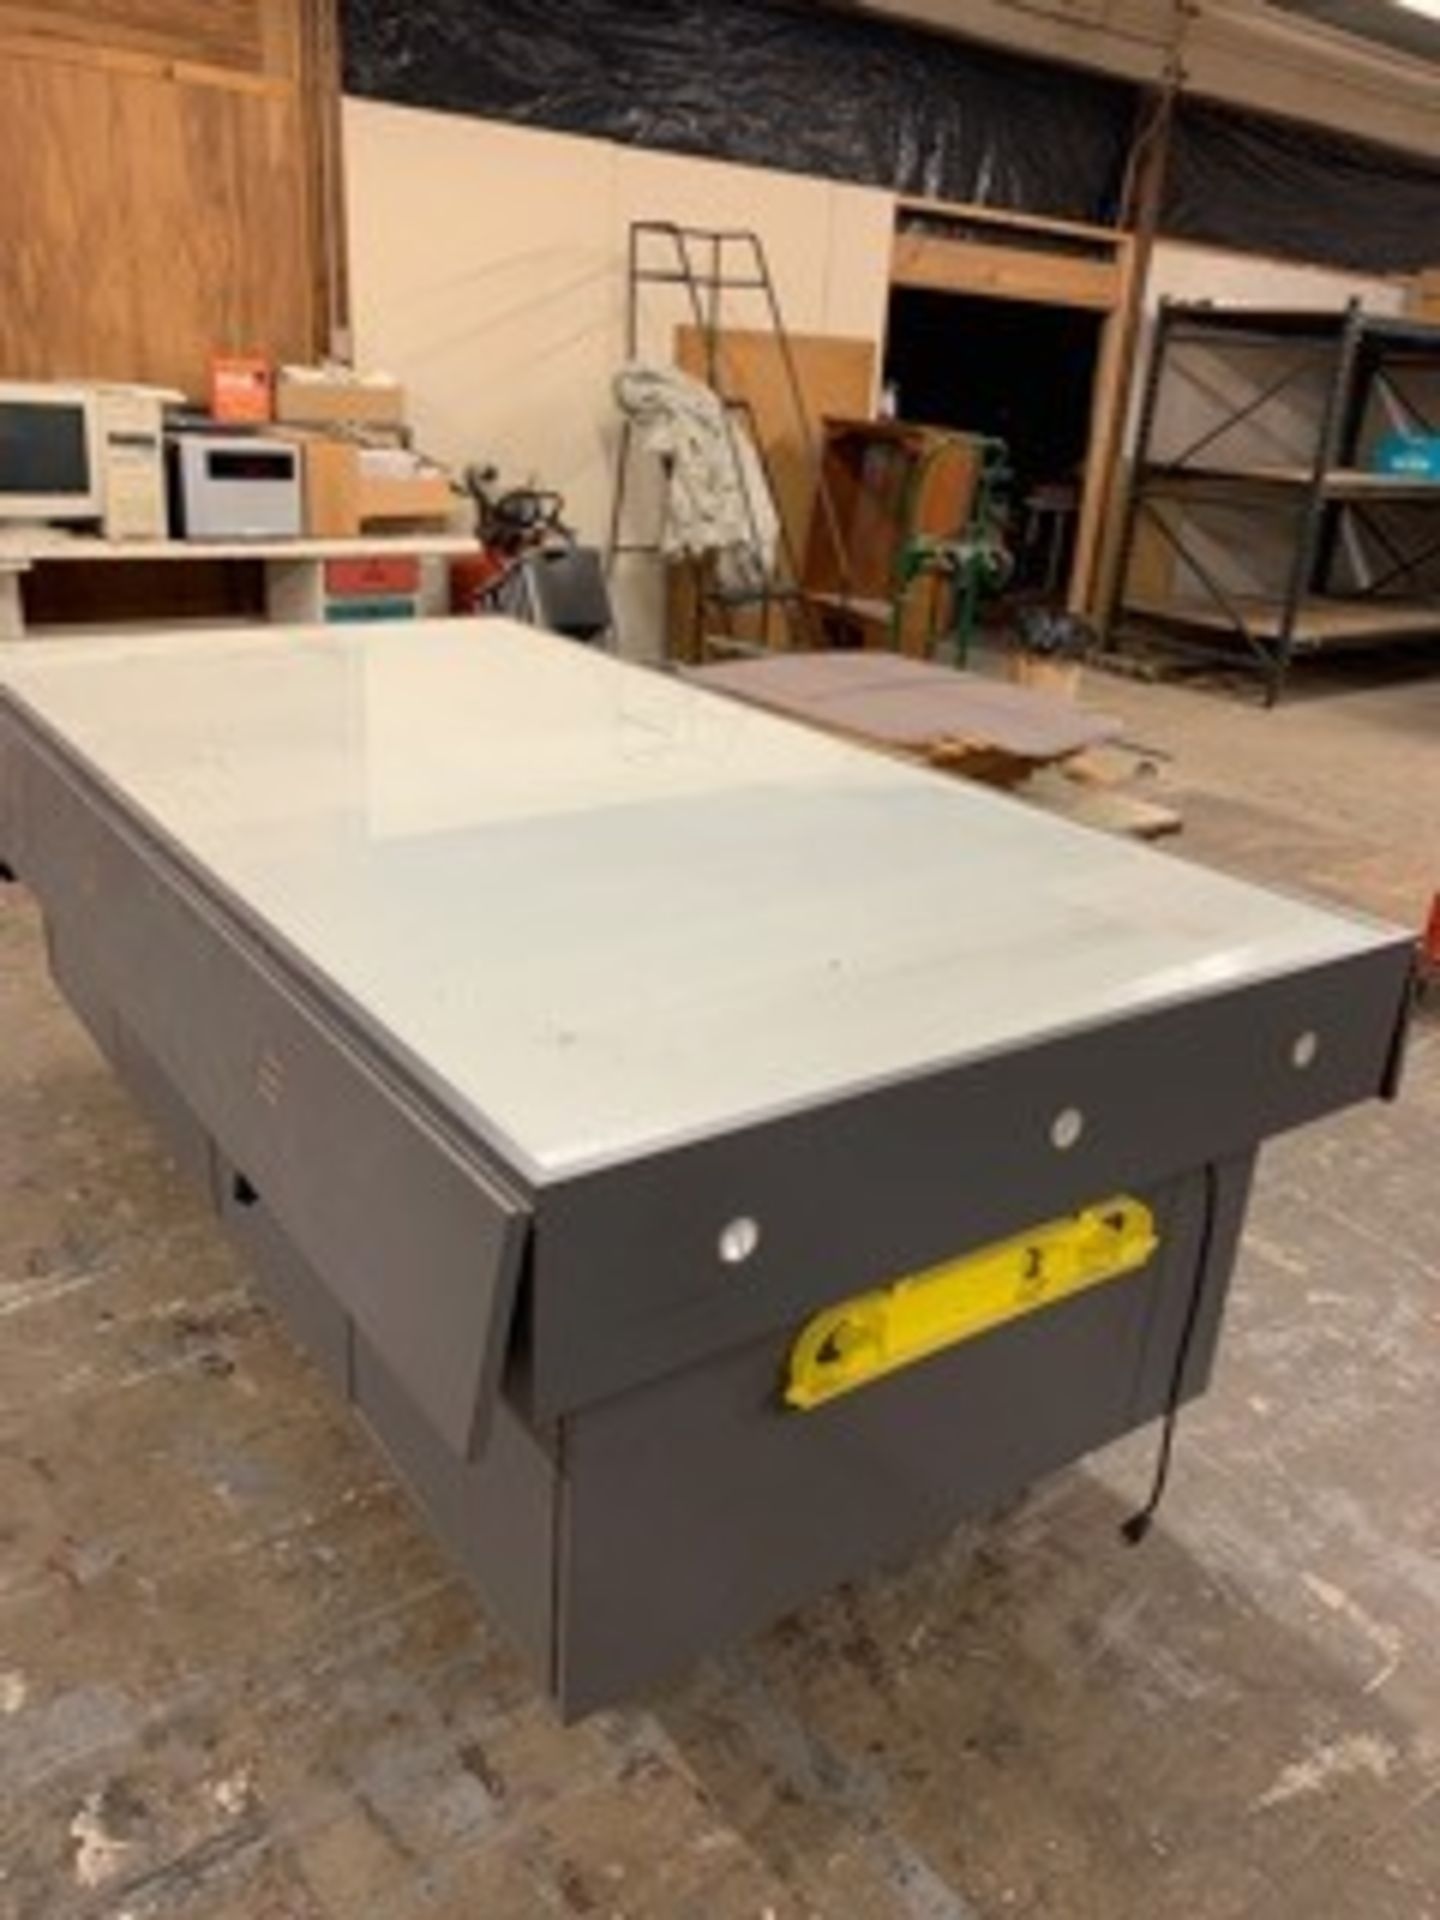 Lot 5067 - 8 FT. LIGHT TABLE (LOCATED AT: 16335 LIMA ROAD, HUNTERTOWN, IN 46748)